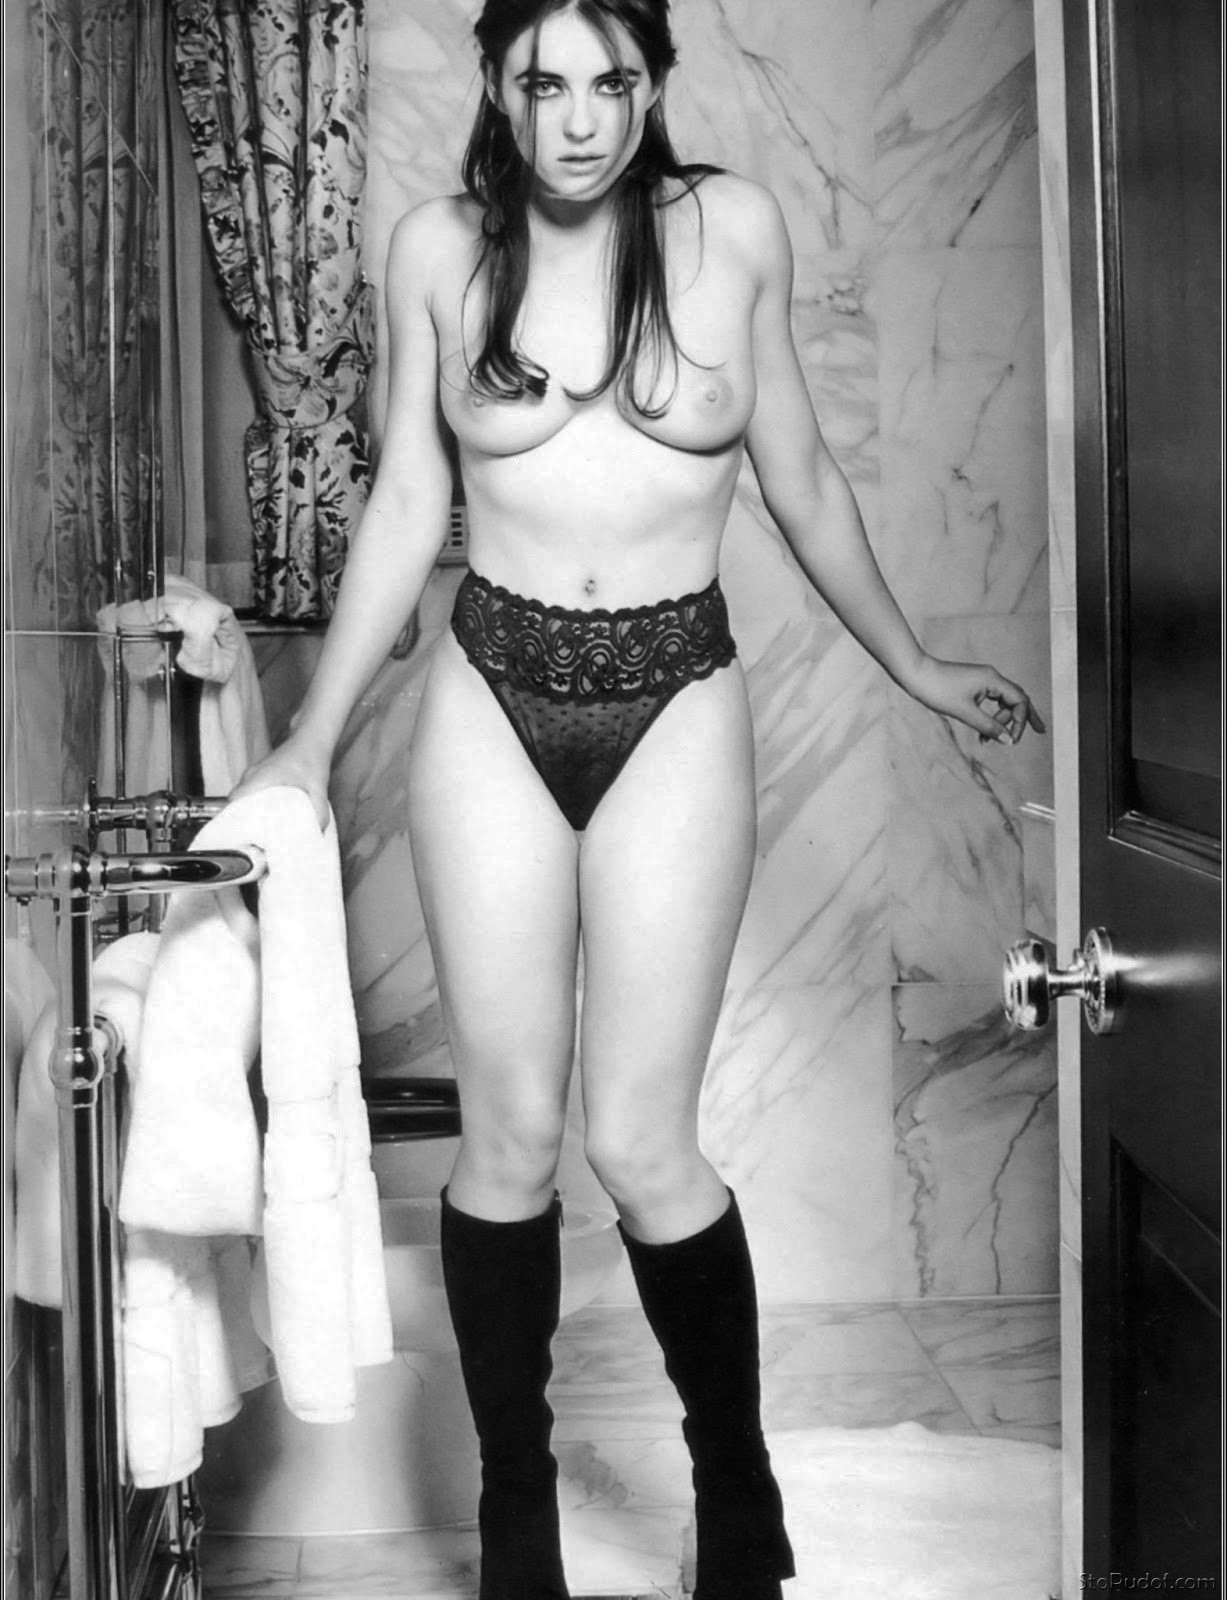 Elizabeth Hurley nude photo view - UkPhotoSafari